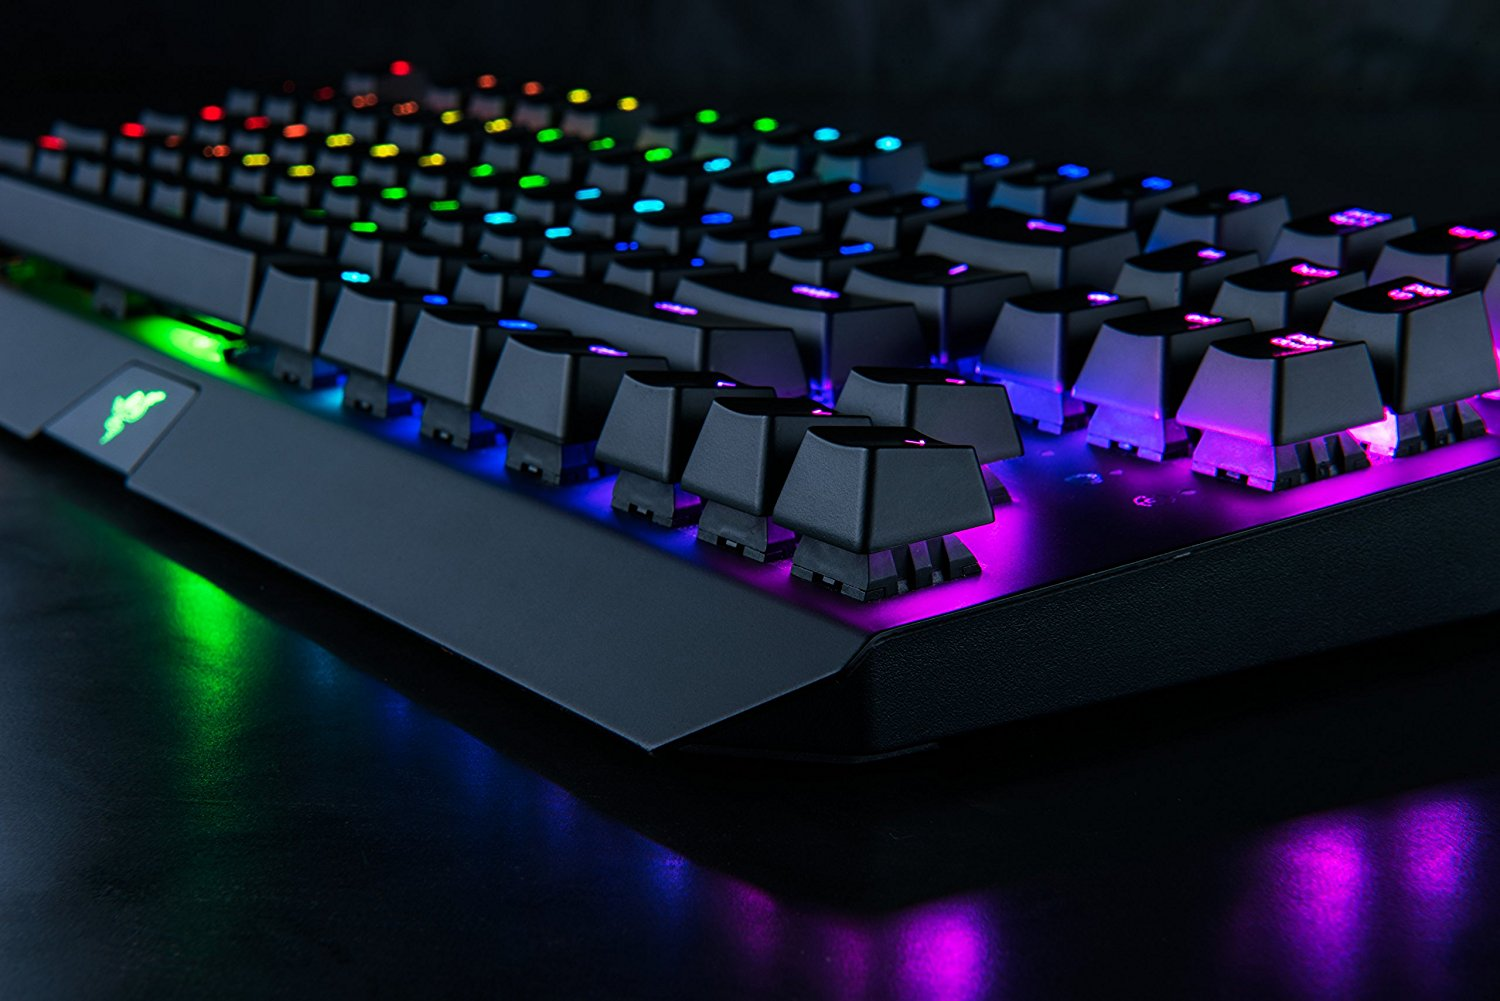 Rekomendasi keyboard gaming rgb murah 2019